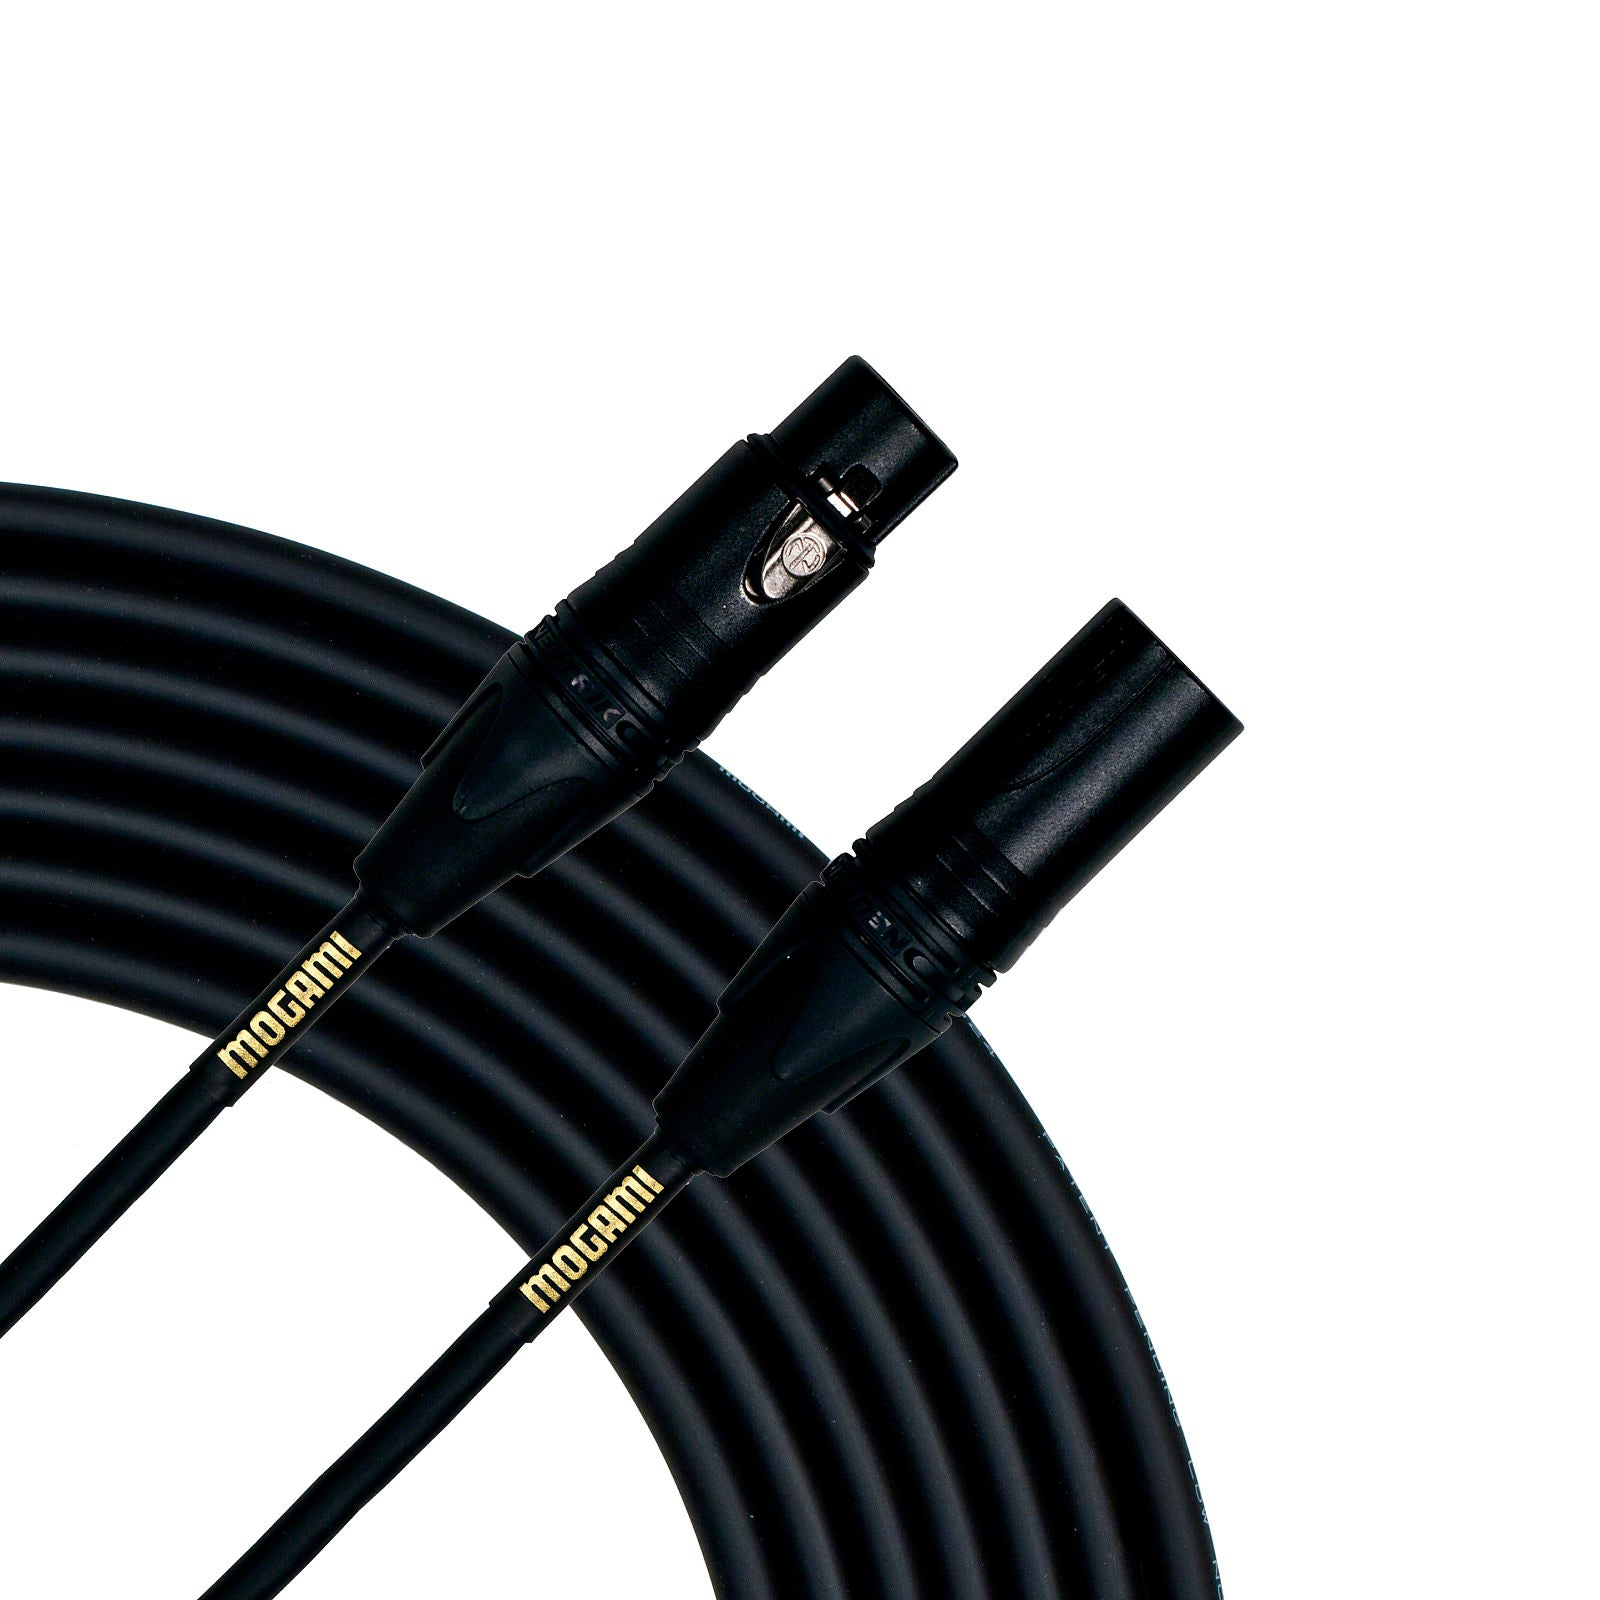 Mogami Gold Studio Microphone Cable, 3 Foot